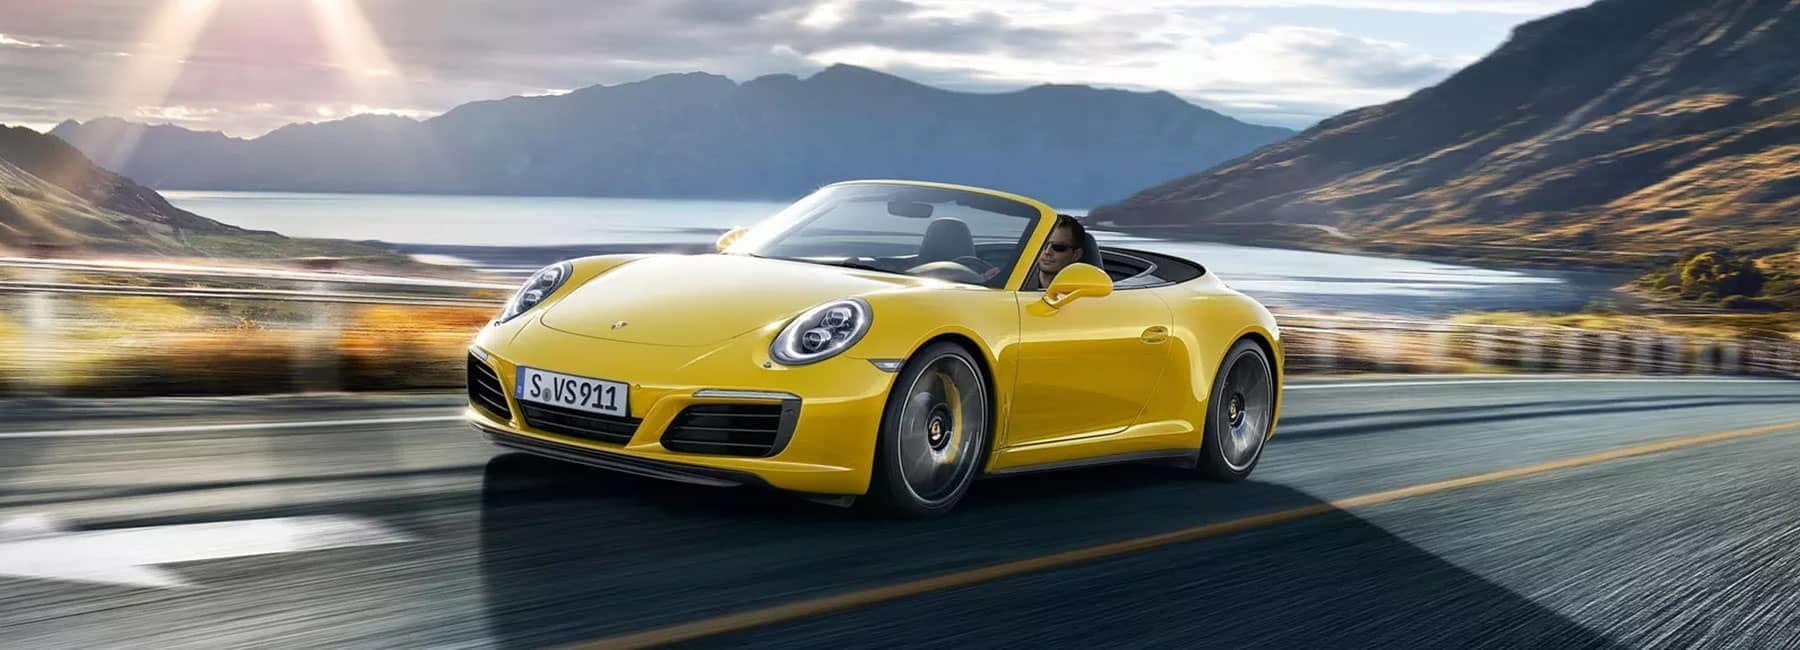 Yellow Porsche on highway